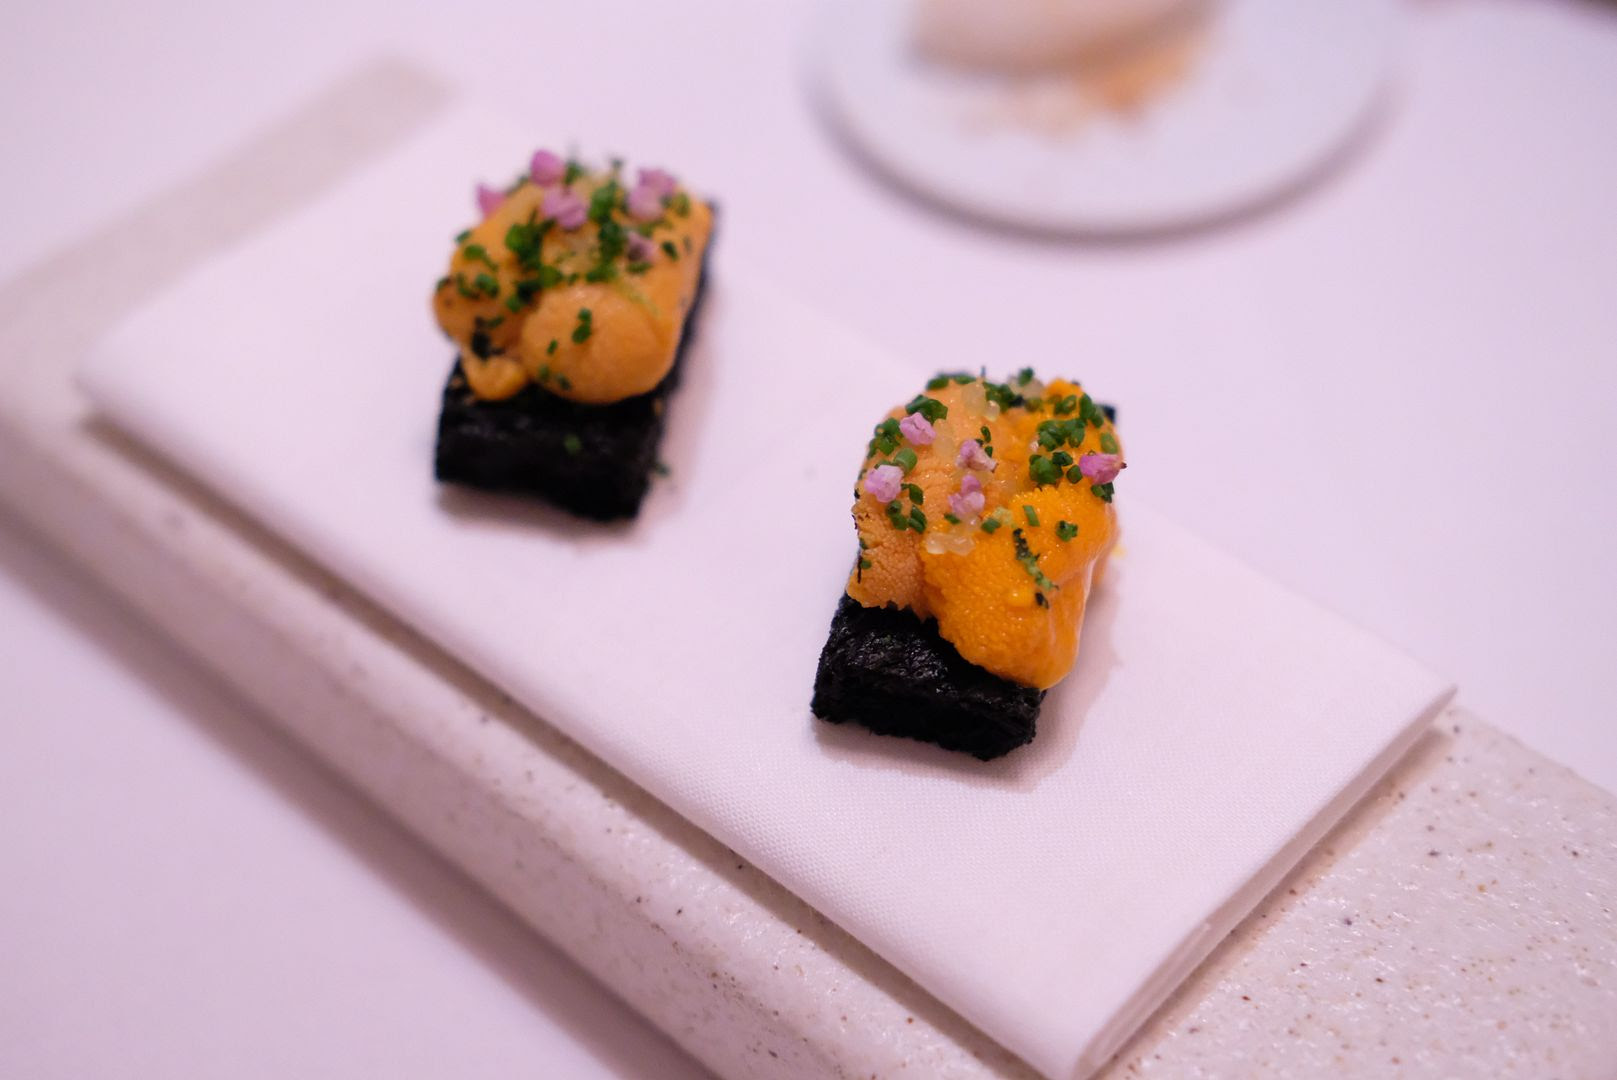 photo Odette two michelin stars singapore.jpg